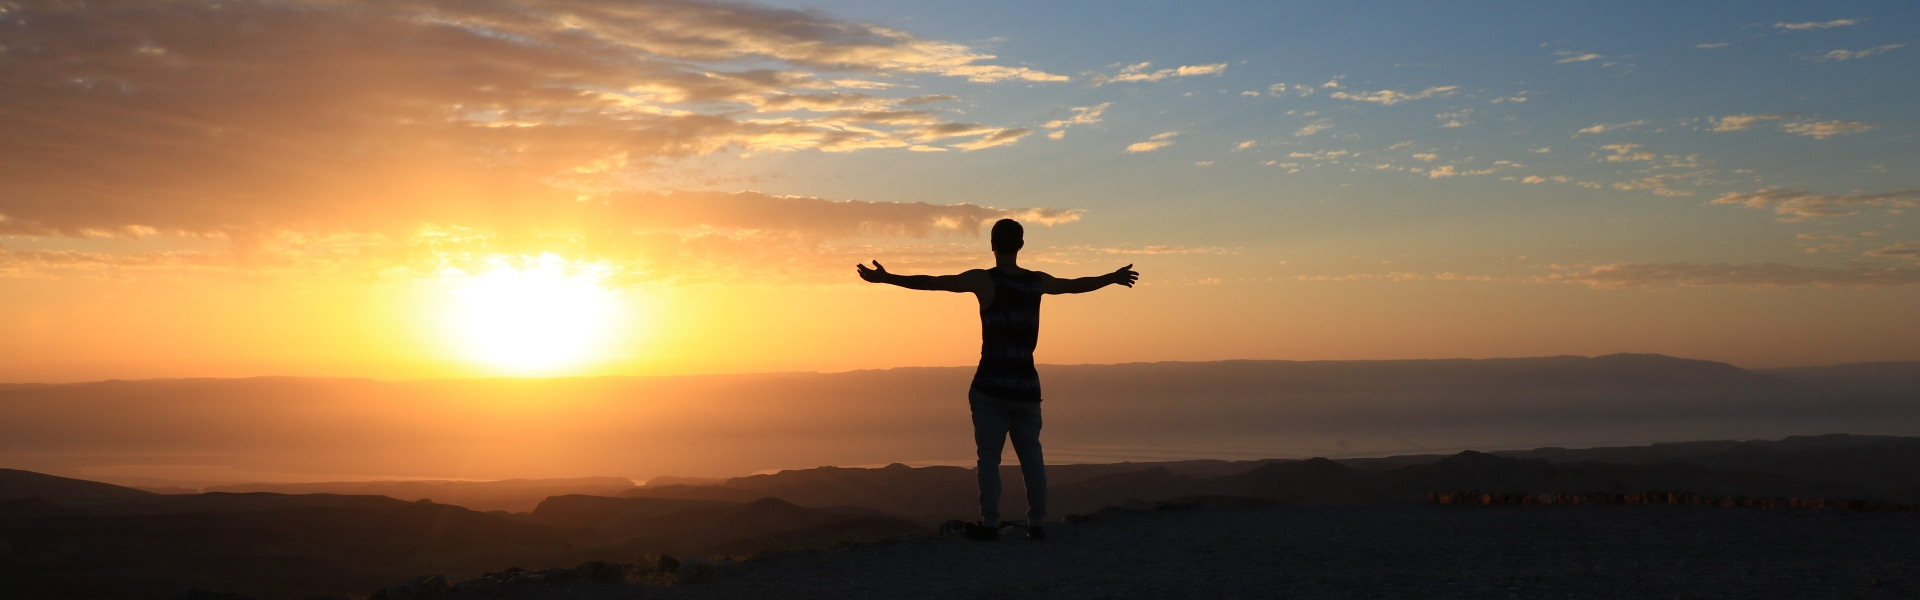 Person standing with outstretched arms at sunset